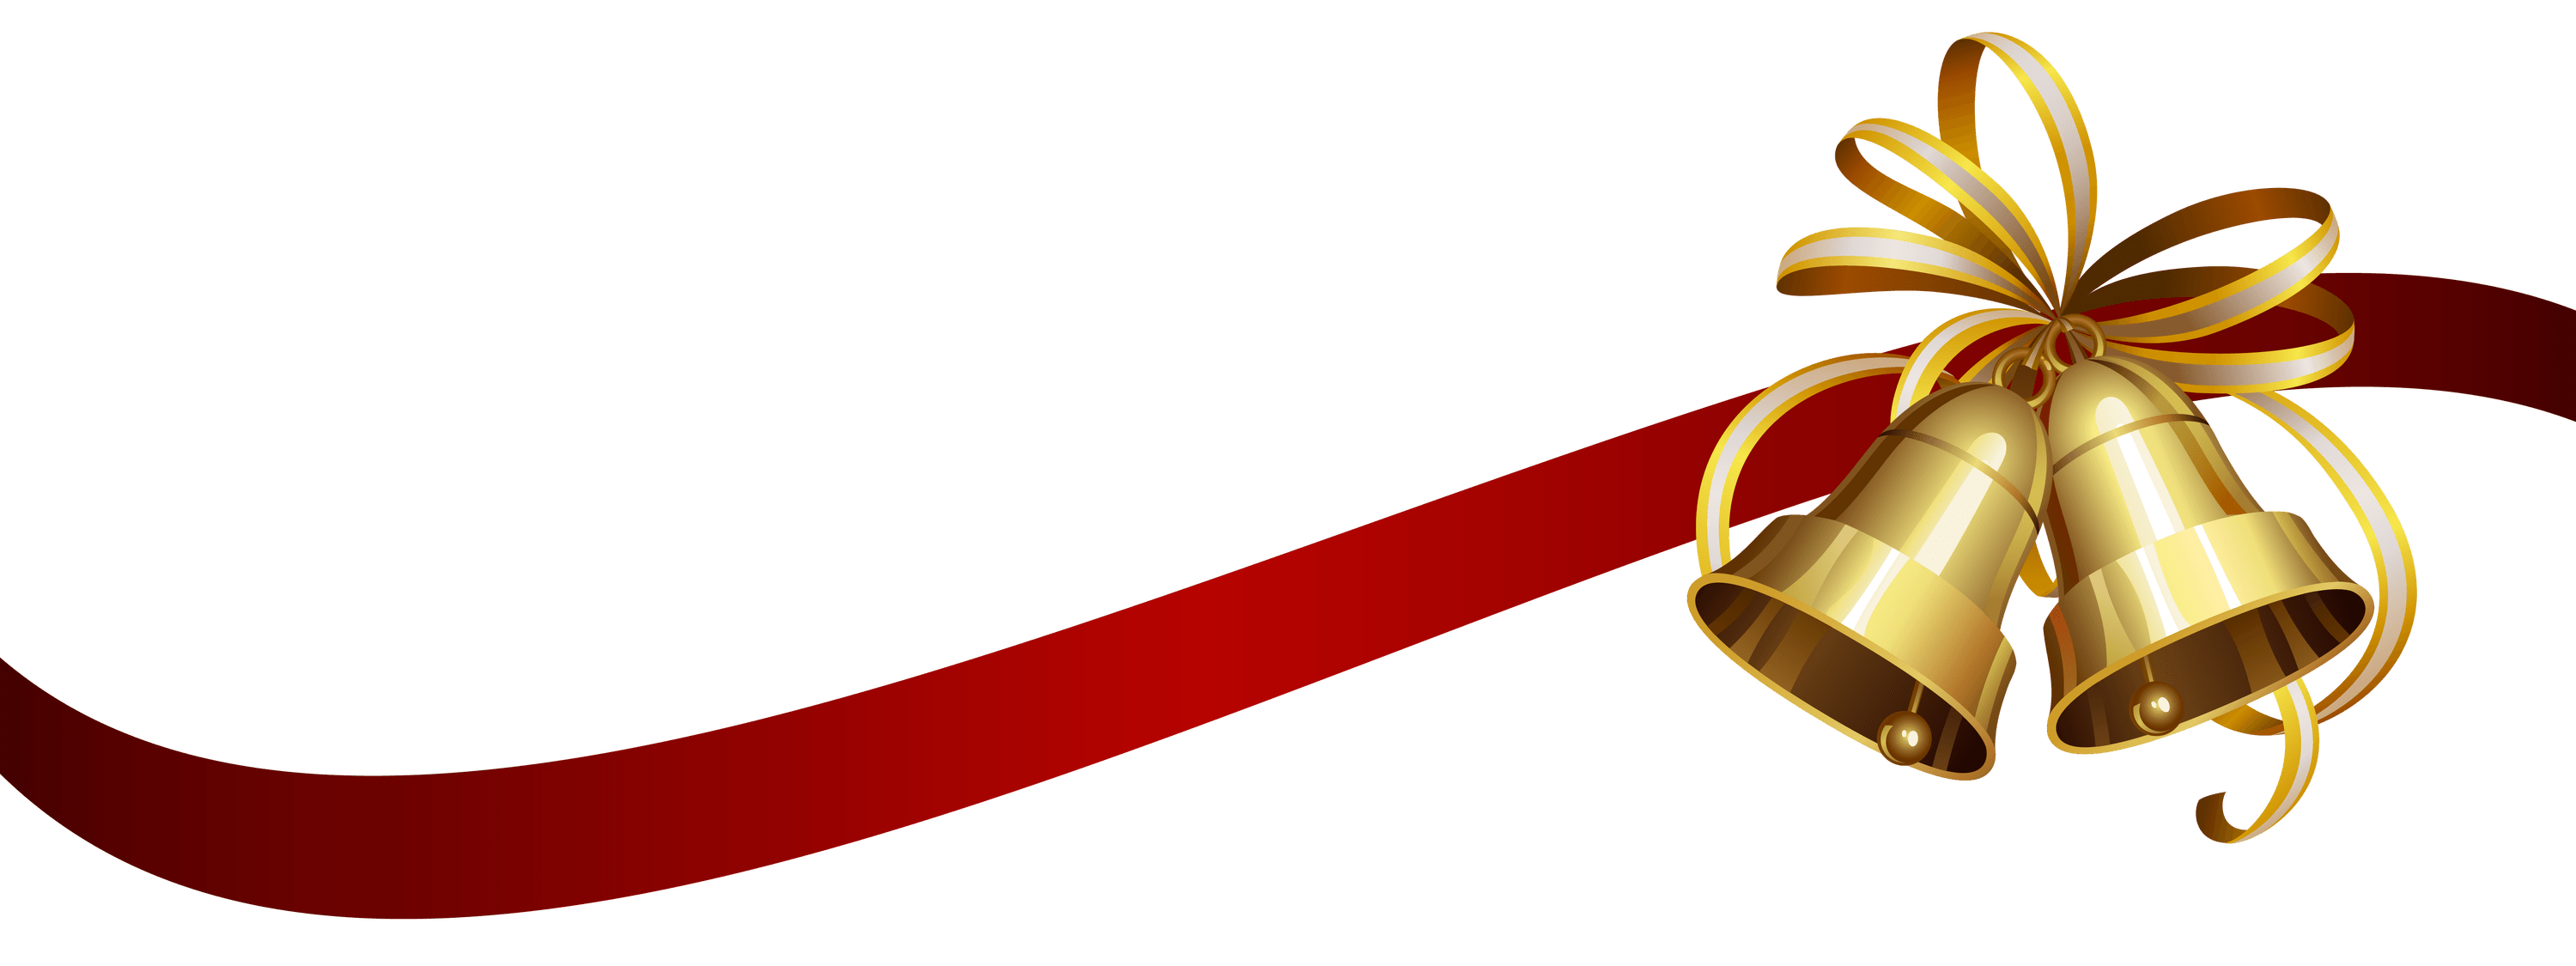 Png Christmas.Christmas Ribbon And Bells Transparent Png Stickpng